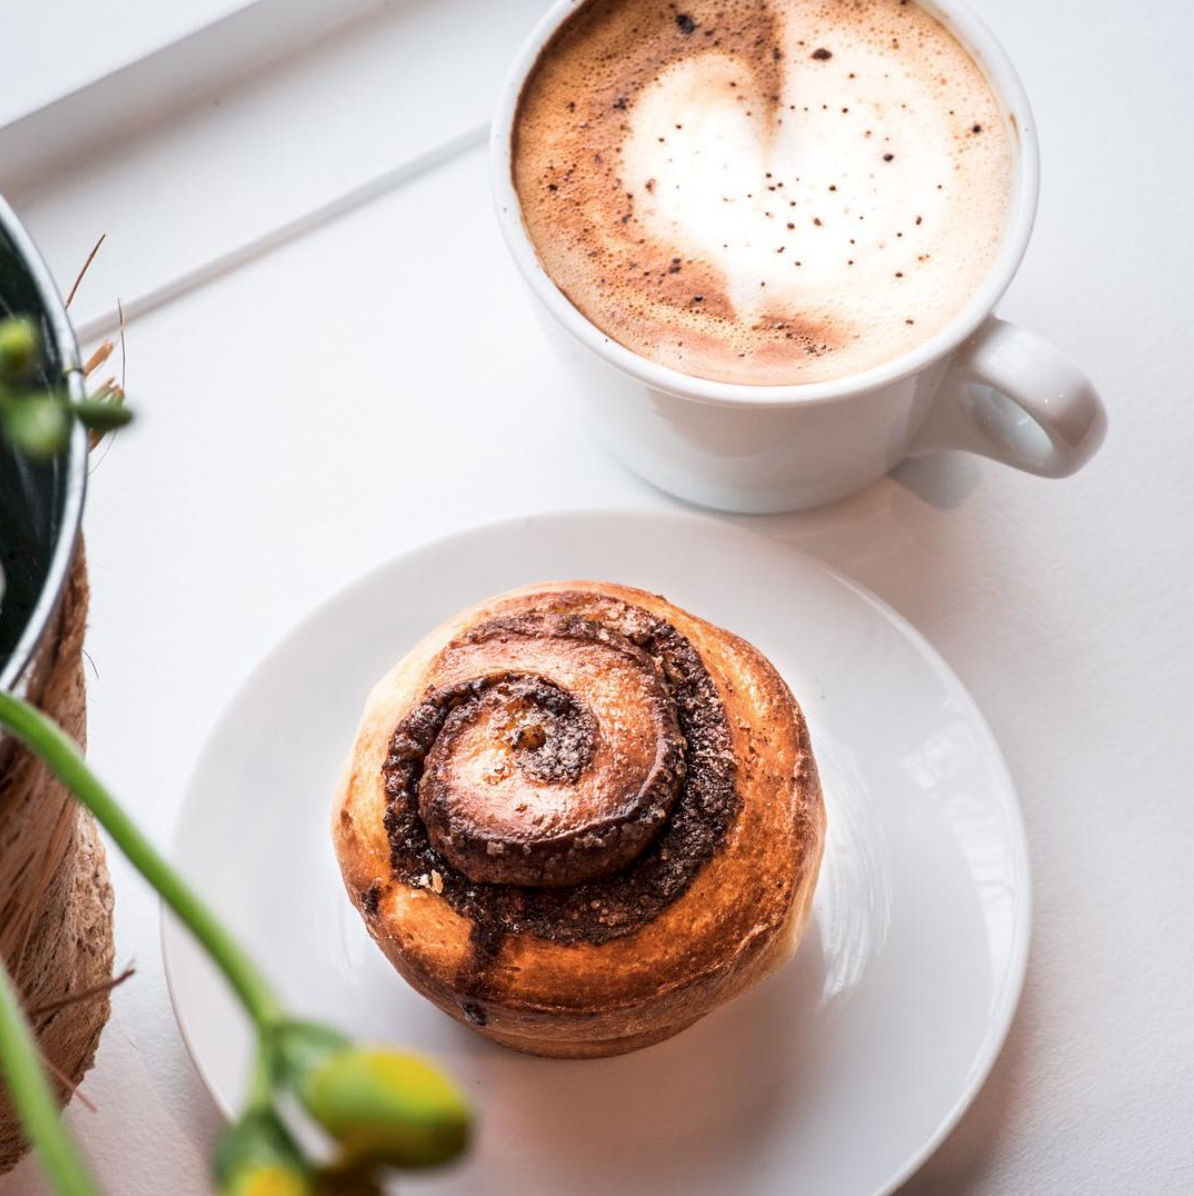 Cozy up with Elvy & Flo's house-made cinnamon brioche and a latte // SUE KEEFE